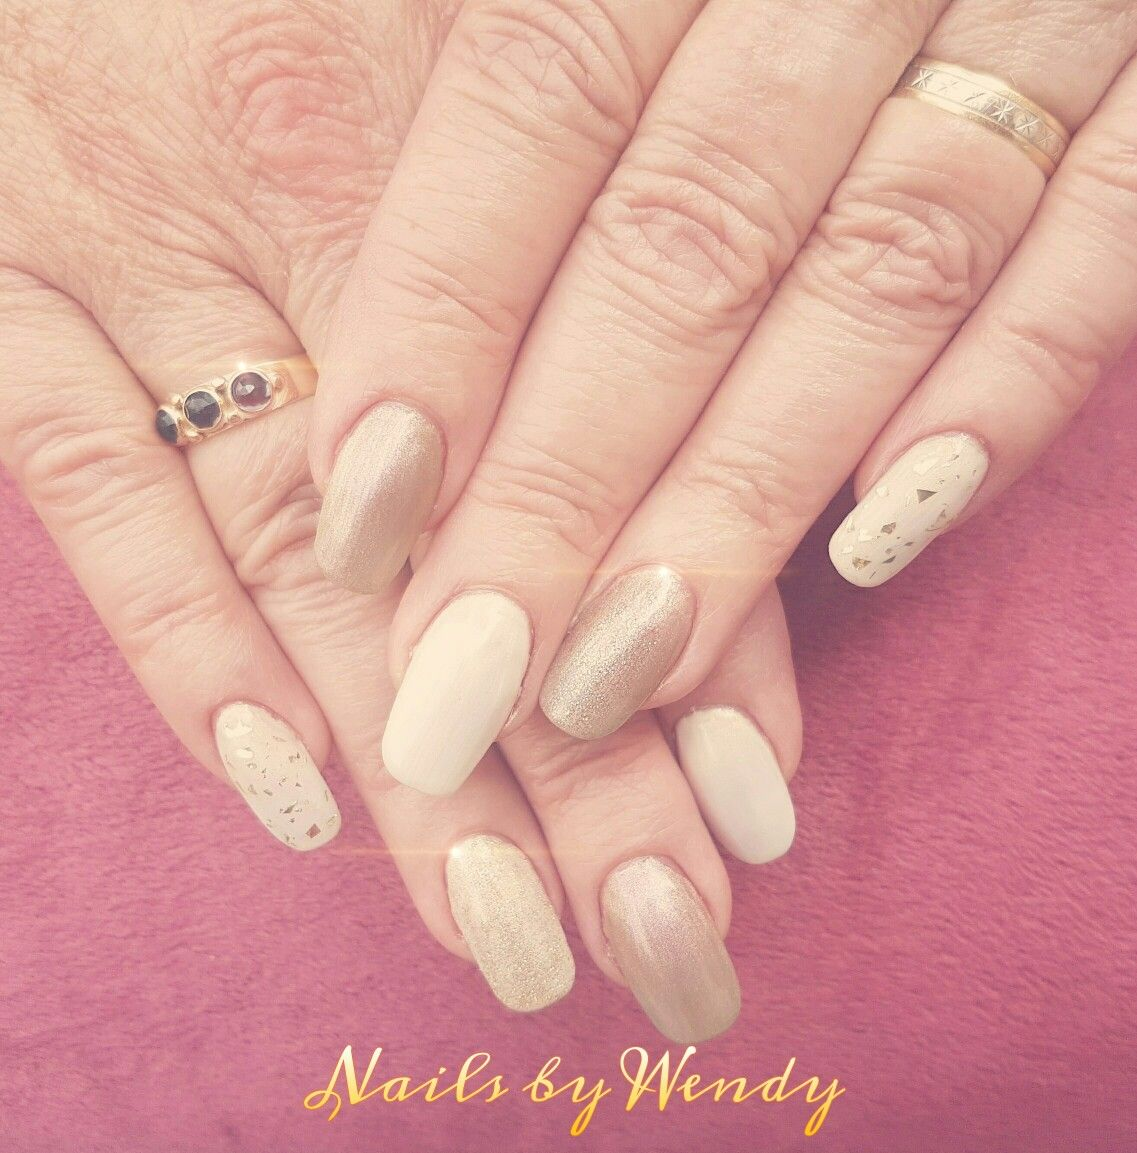 Parelmoer en goud! - nails done by me! ❤ | Pinterest - Goud